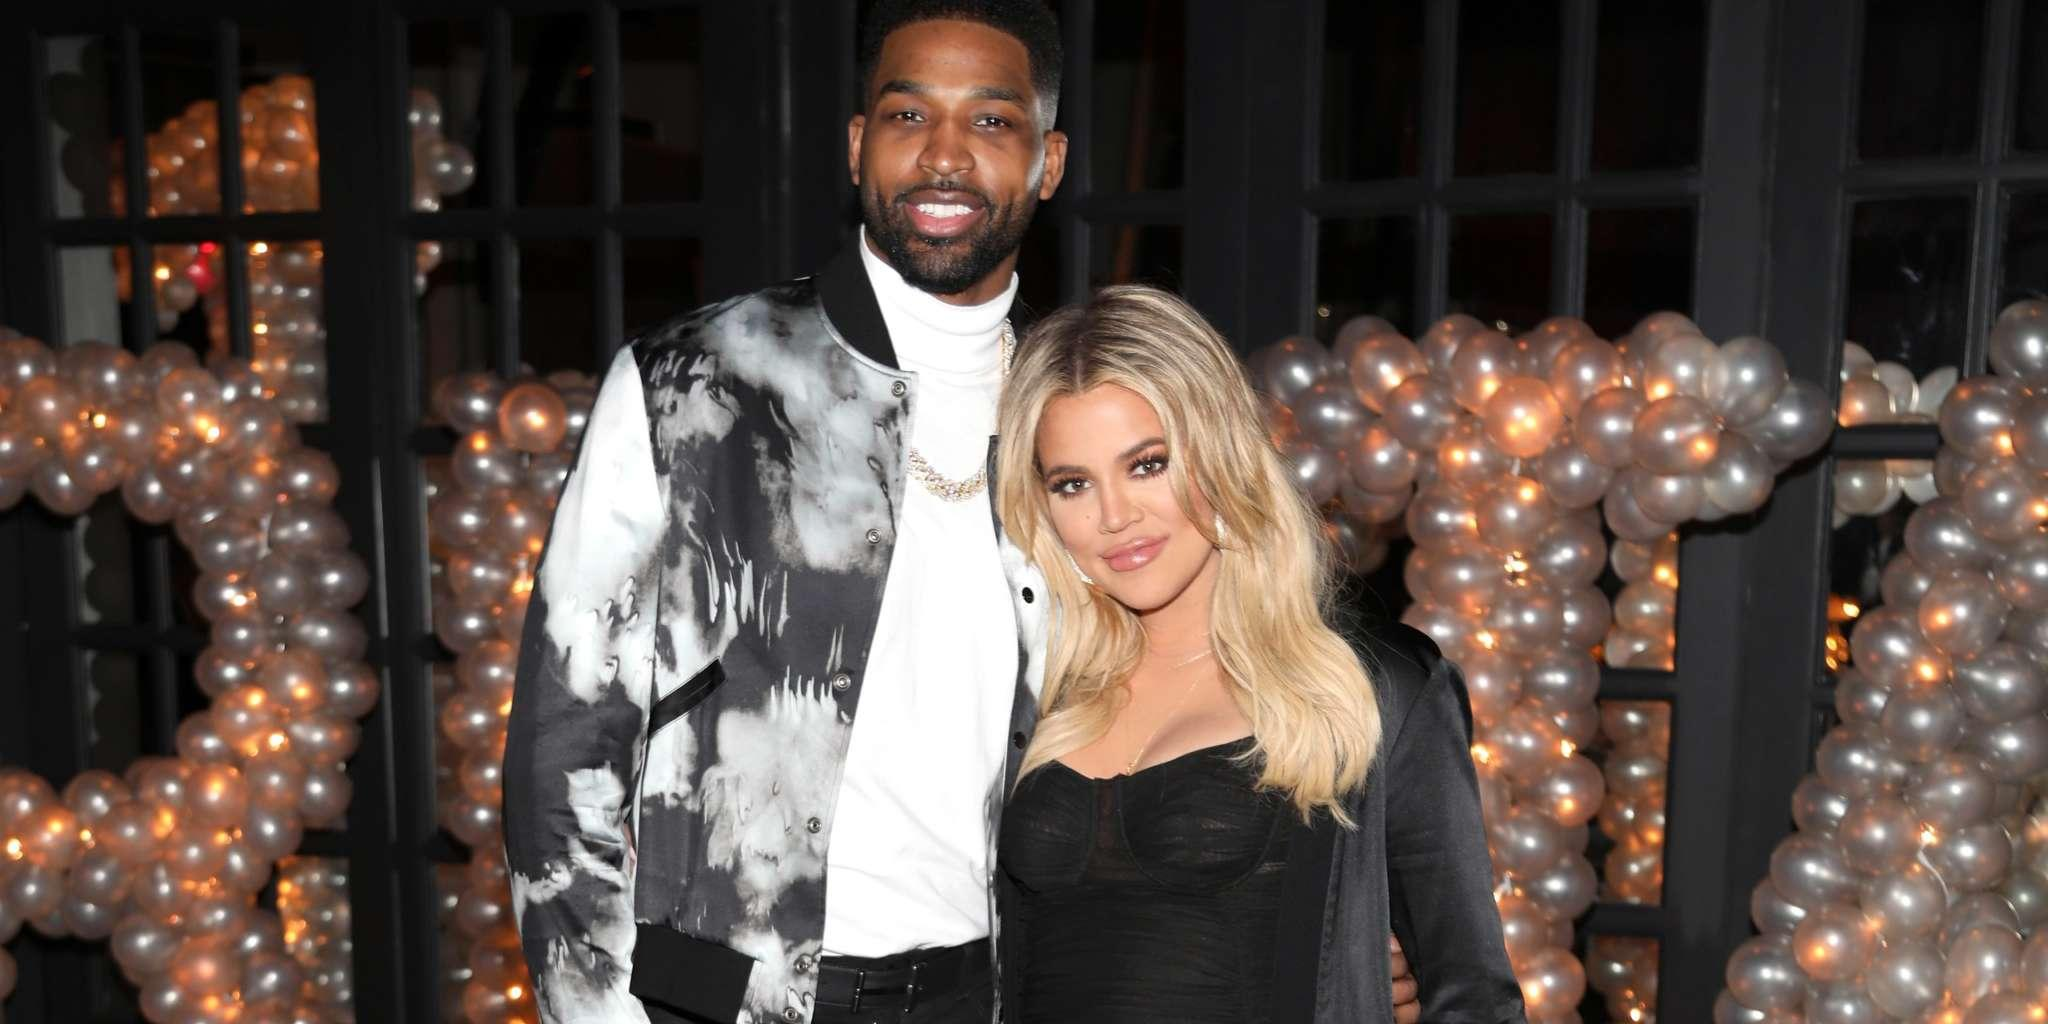 KUWK: Losing Khloe Kardashian Is Tristan Thompson's Biggest Regret - He Will Not Stop Until He Has Her Back, Sources Say